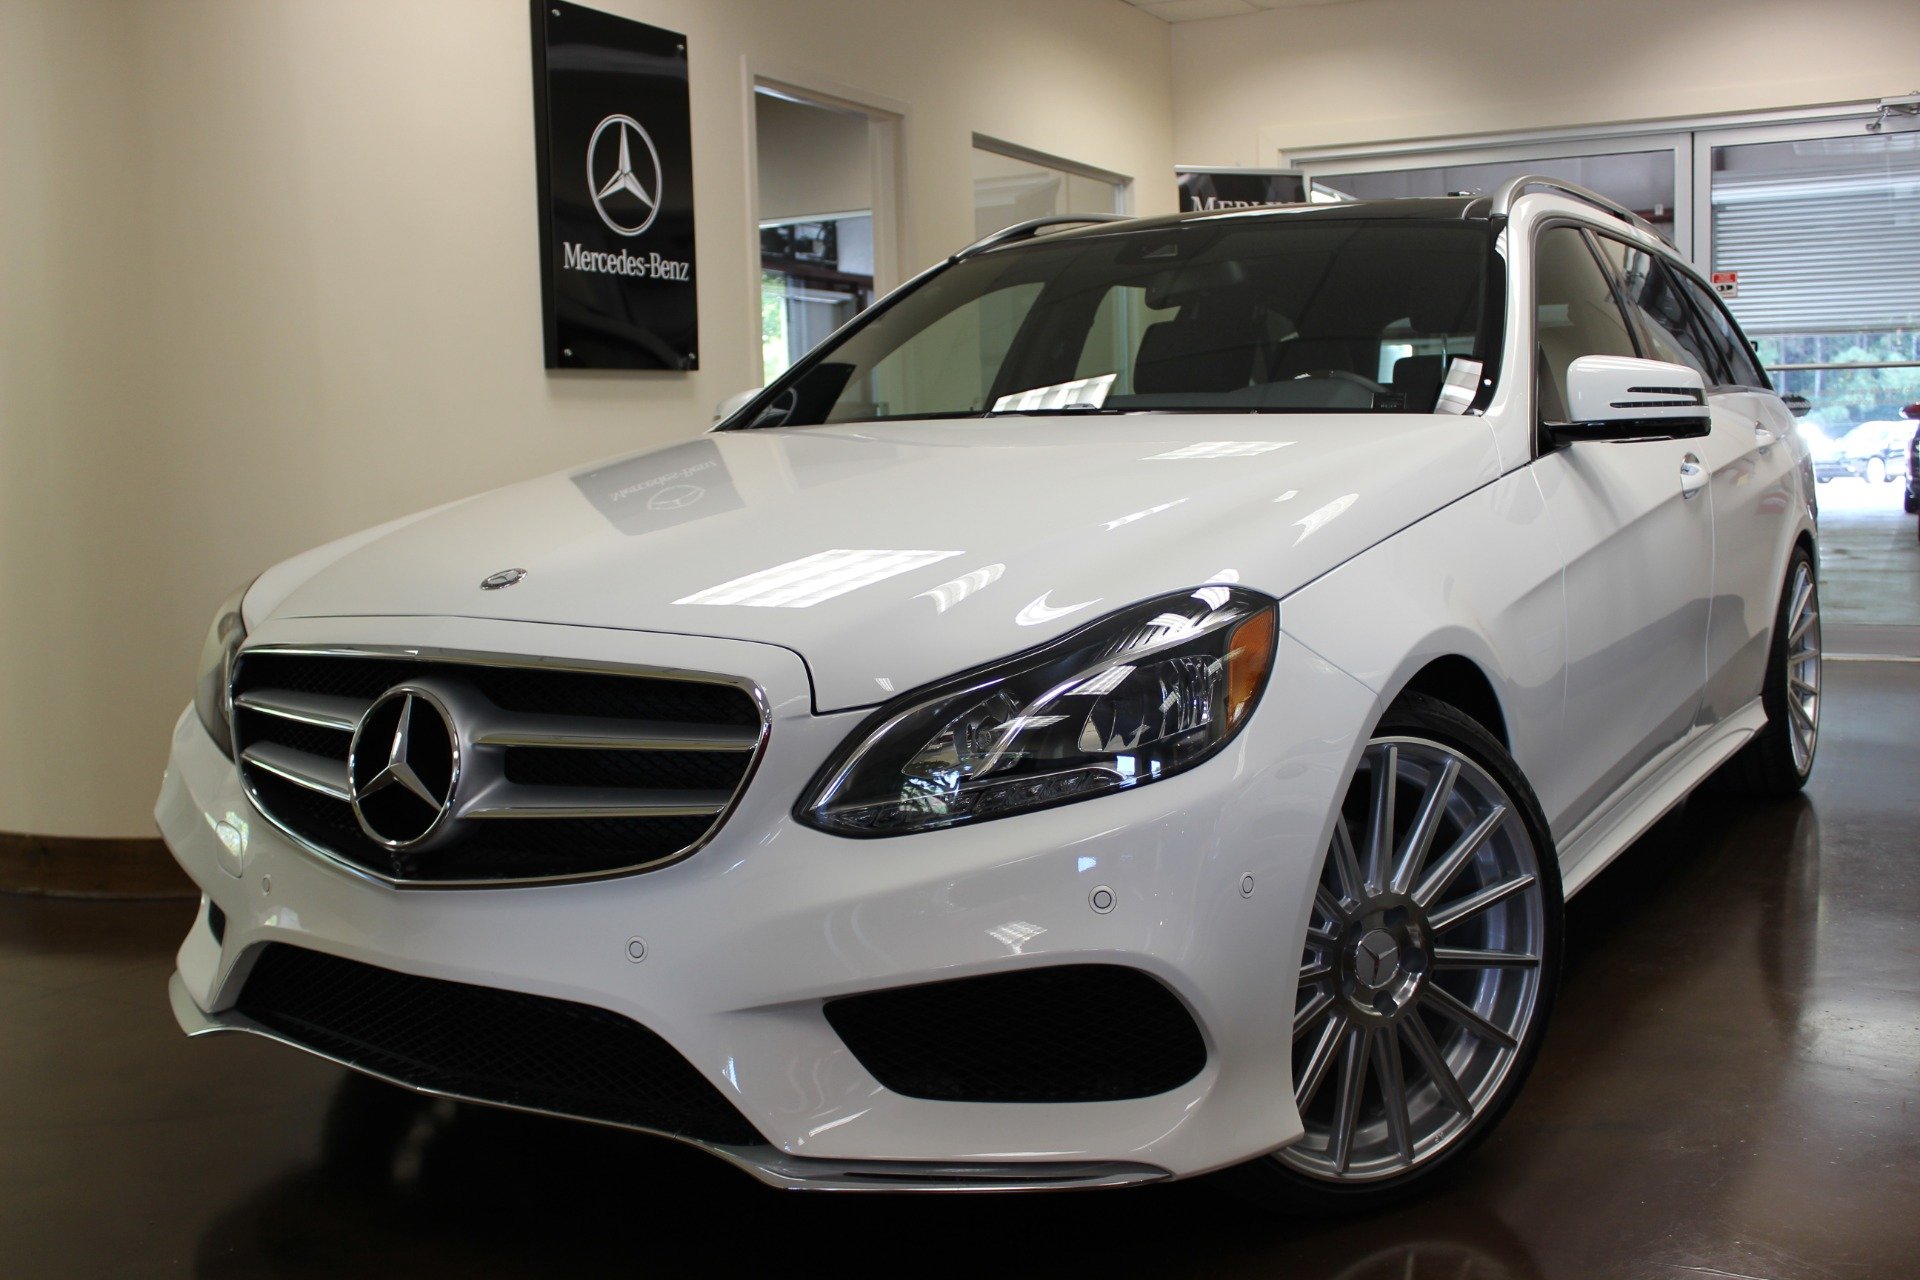 Used 2015 mercedes benz e class stock p3223 ultra luxury for Mercedes benz new cars 2015